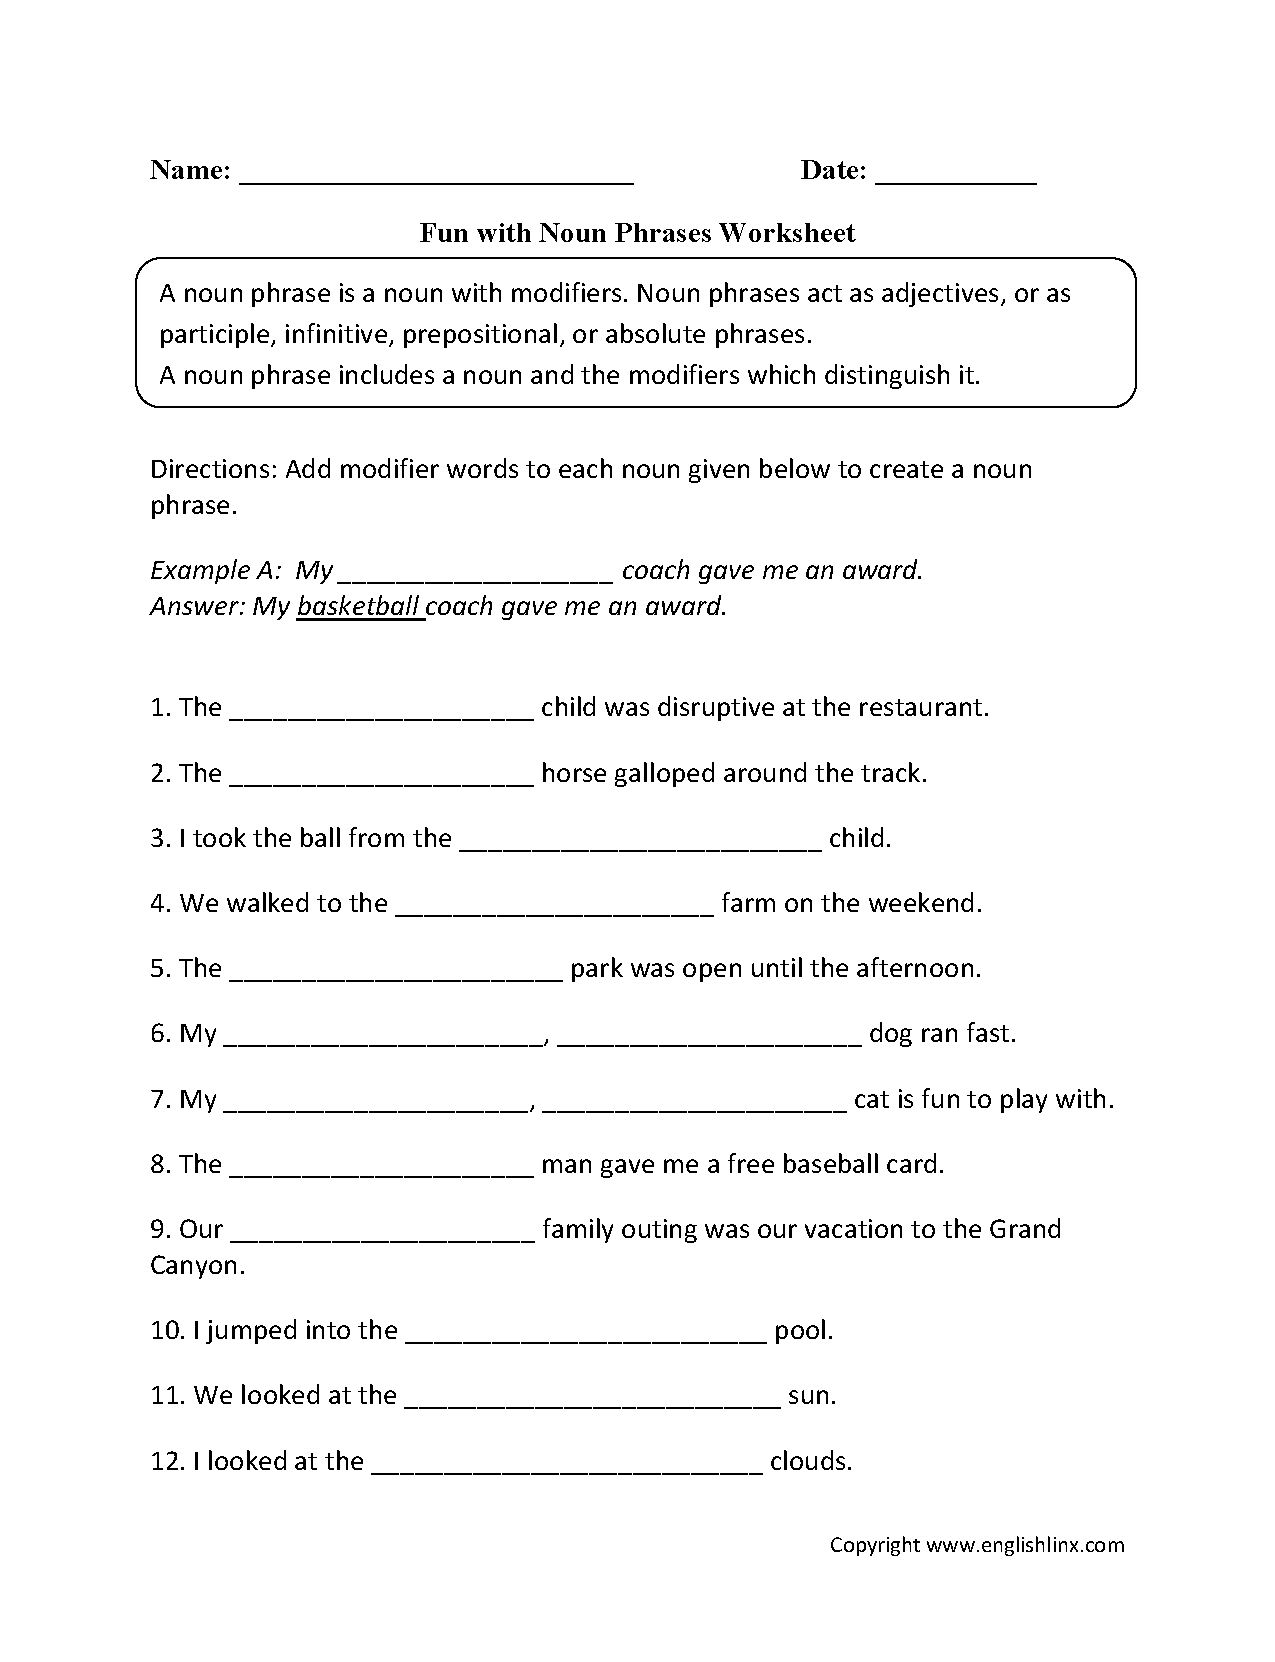 Functional Thinking Worksheets